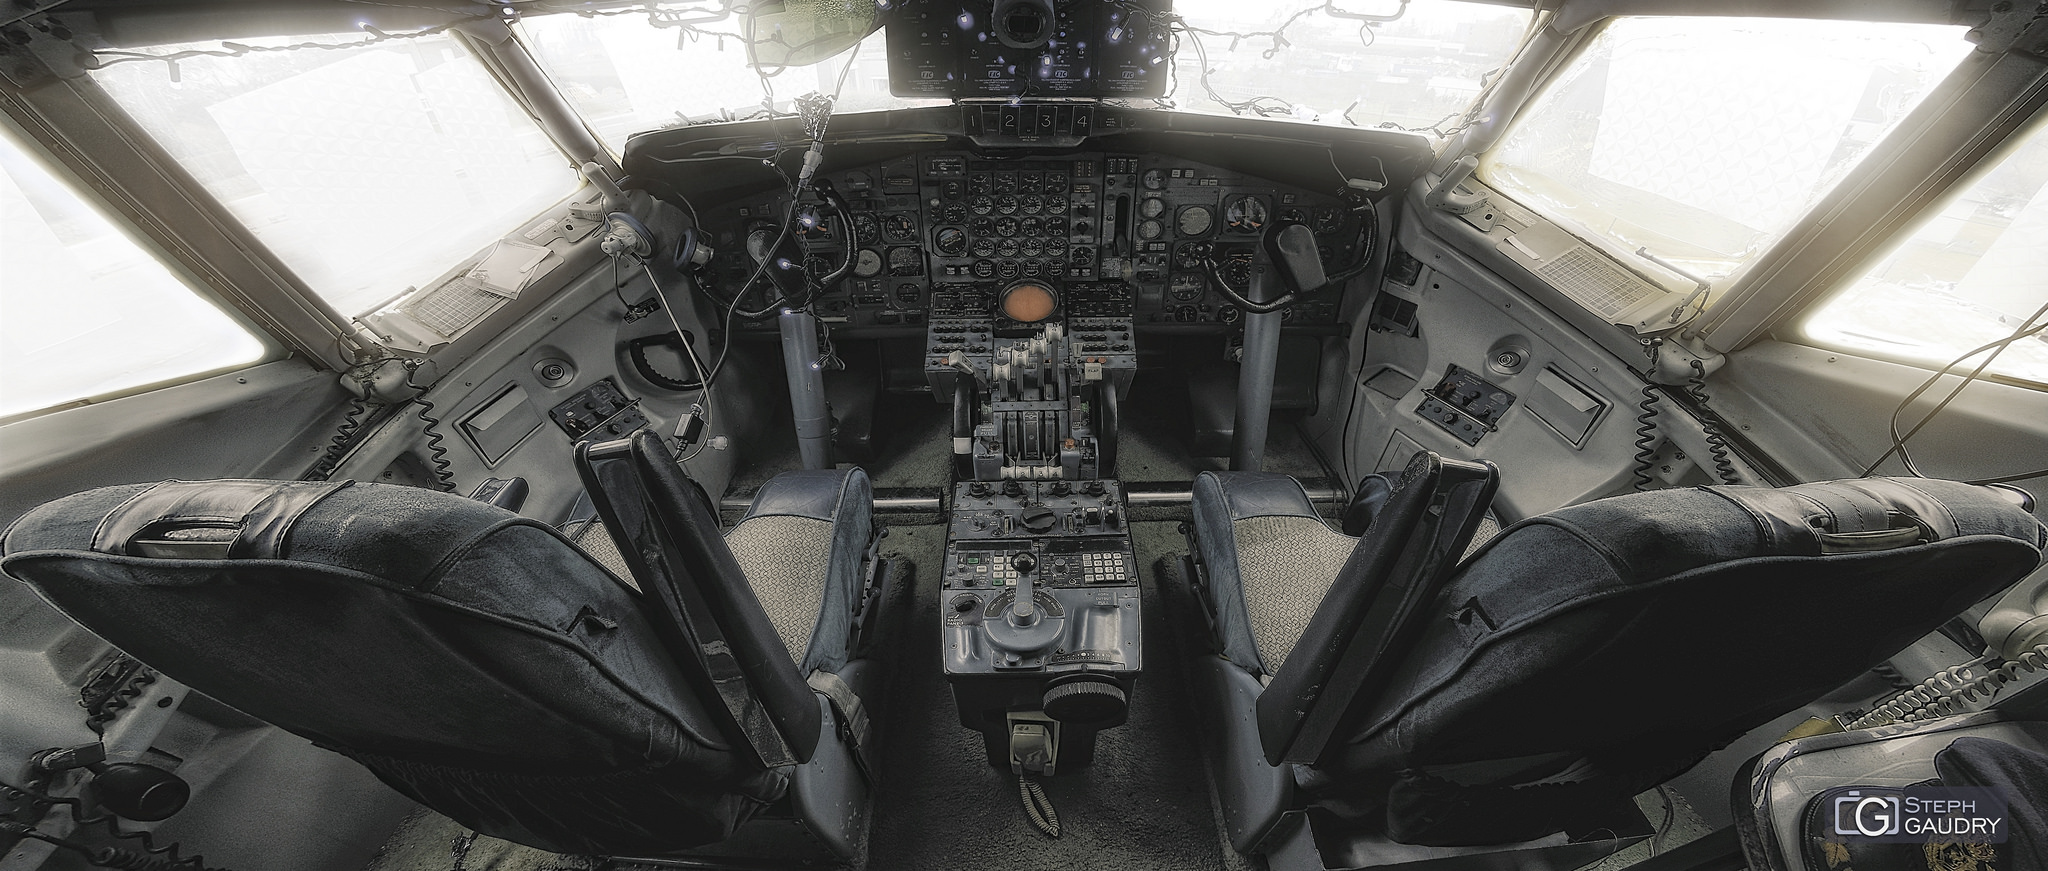 Cockpit Boeing 707 - Flat colored version [Click to start slideshow]